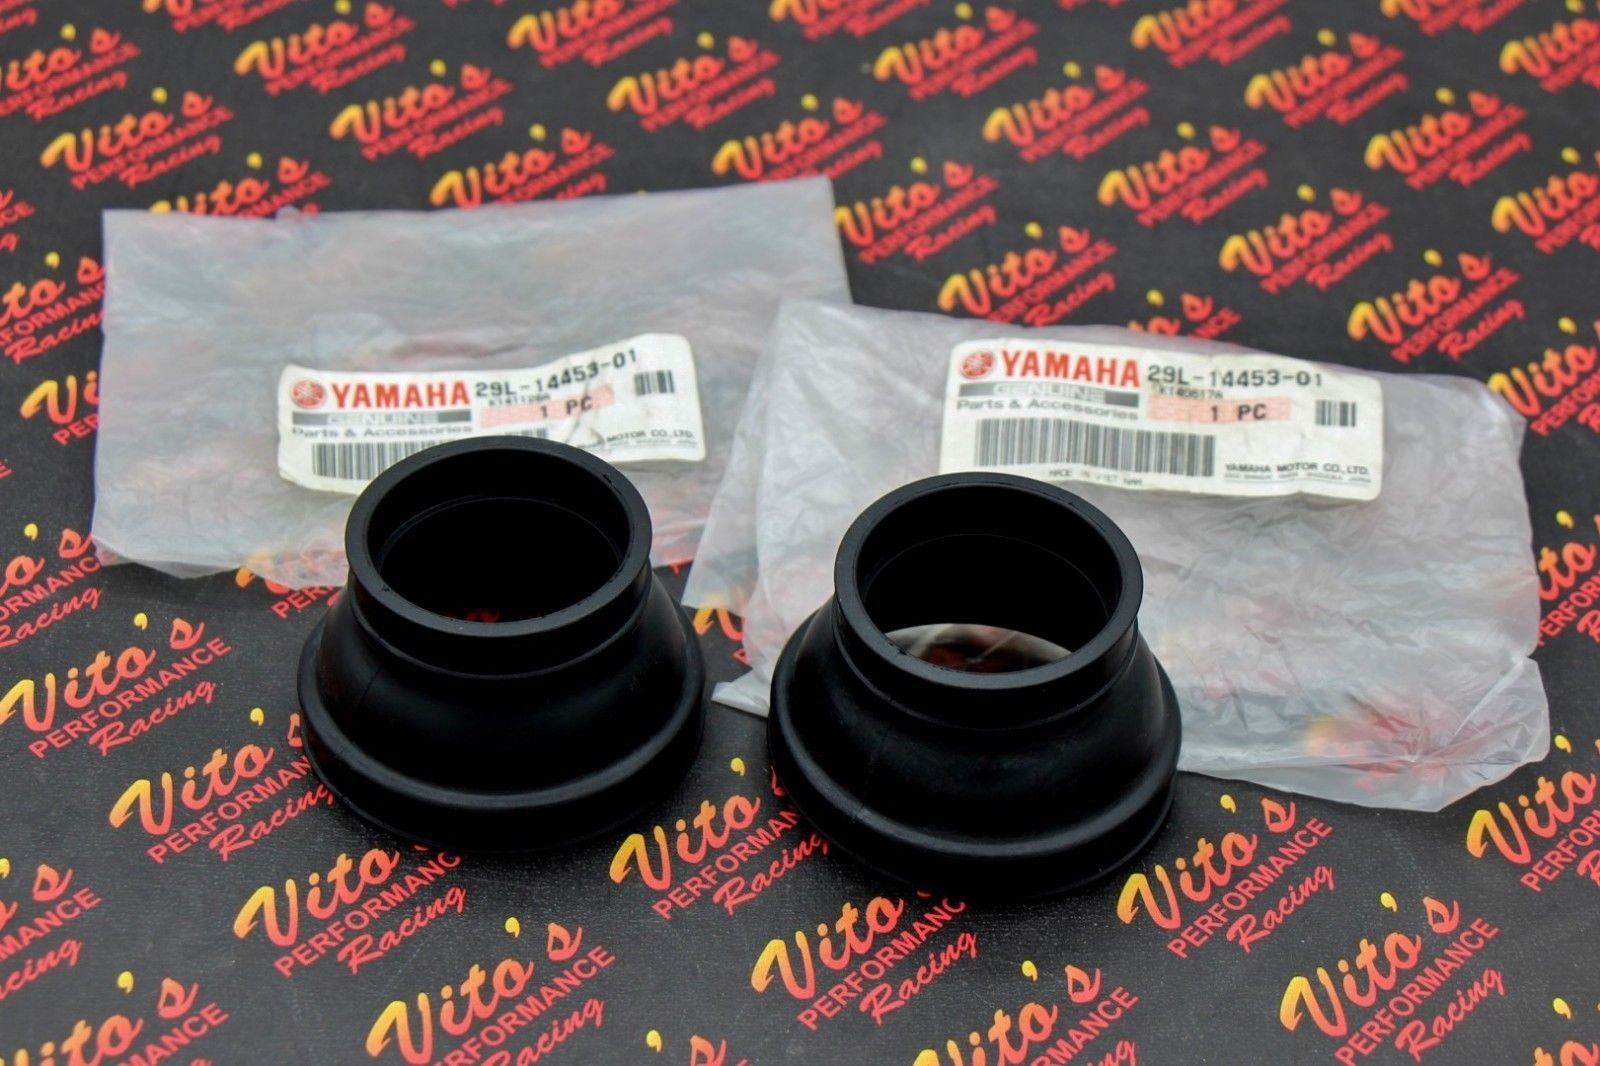 Vito's Performance 2 x New Yamaha Banshee 350 airbox Rubber Boots OEM Factory Stock 1987-2006 by Vito's Performance (Image #1)